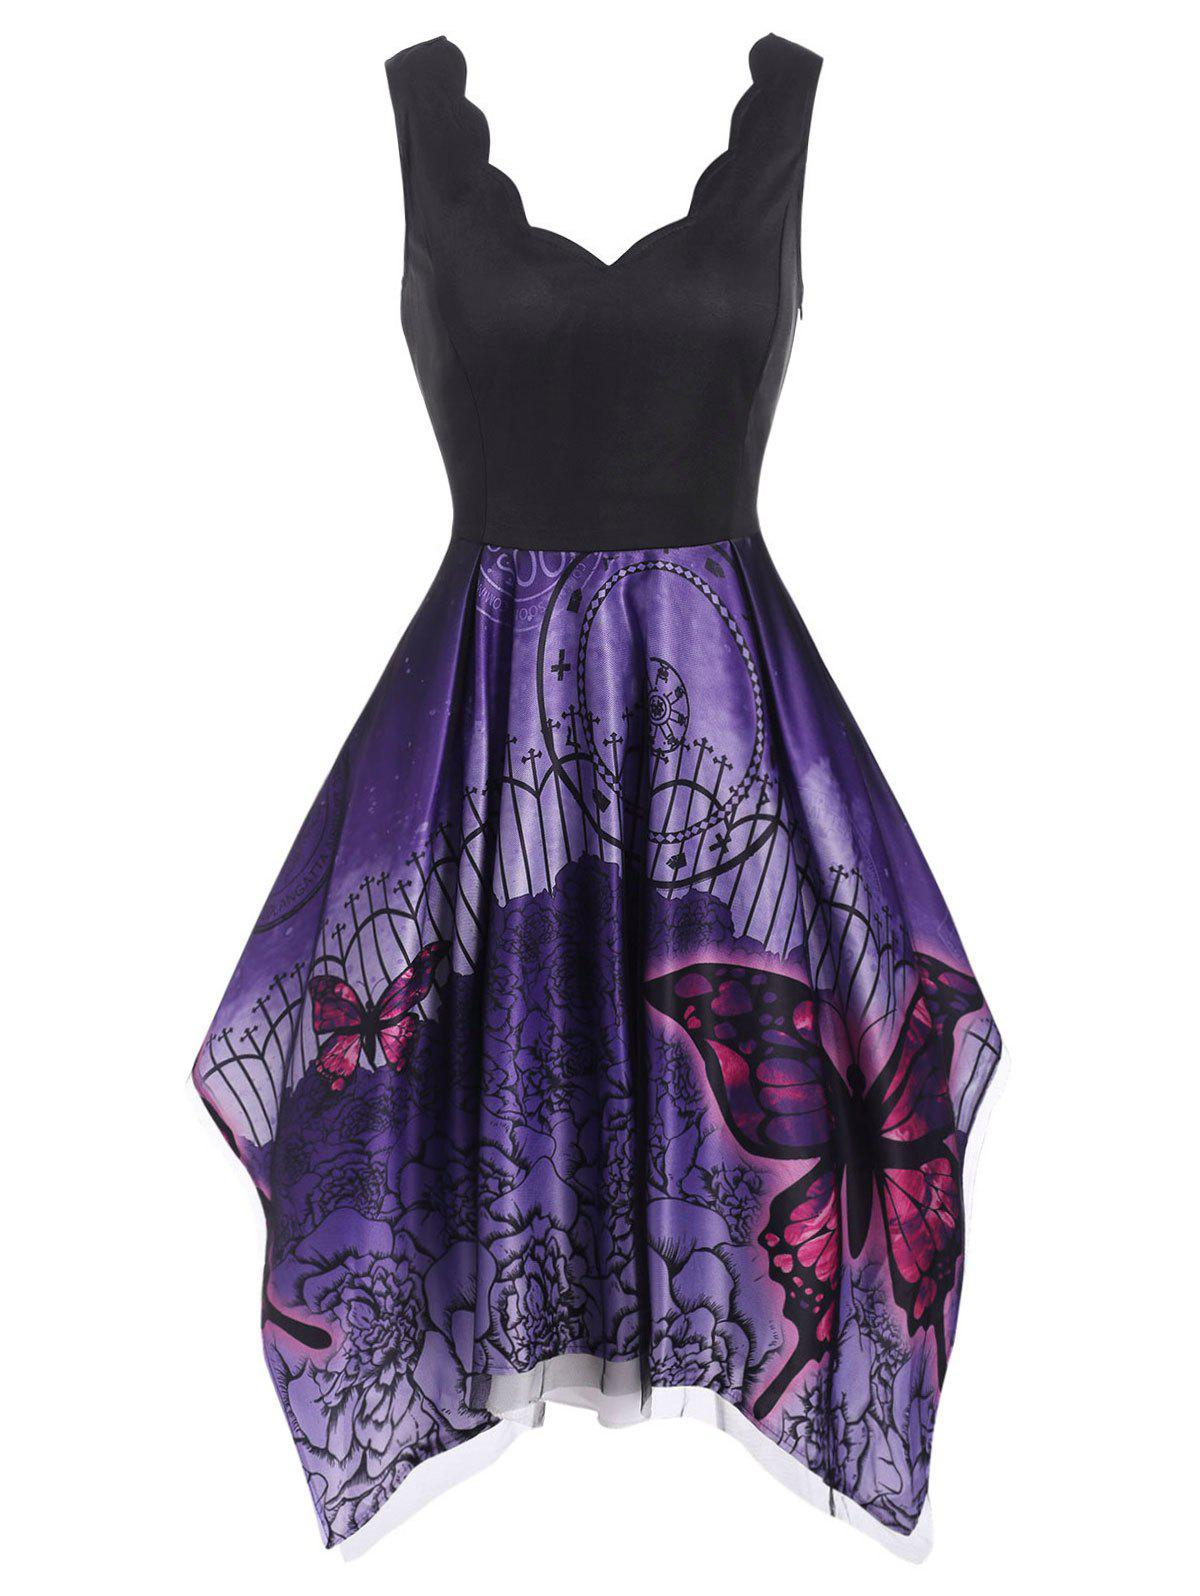 Lace Overlay Butterfly Flower Print Scalloped Handkerchief Dress - PURPLE L